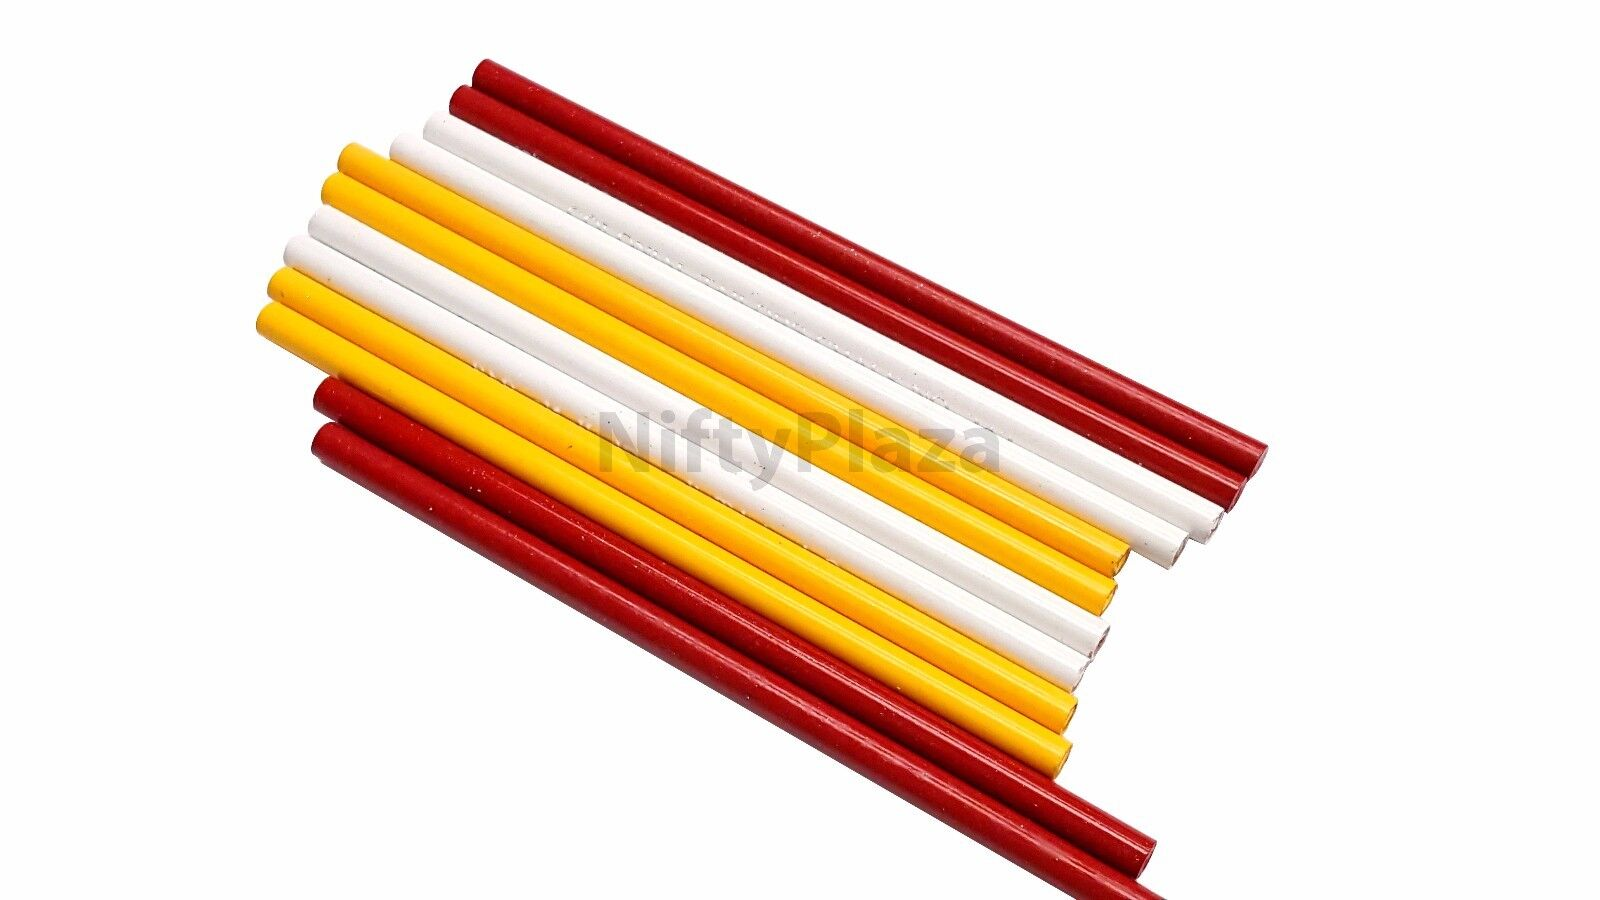 NiftyPlaza Tailors Chalk Fabric Marking Pencils Sewing Tracing Tools Brand New for Sewing Marking and Tracing 3 Pencils